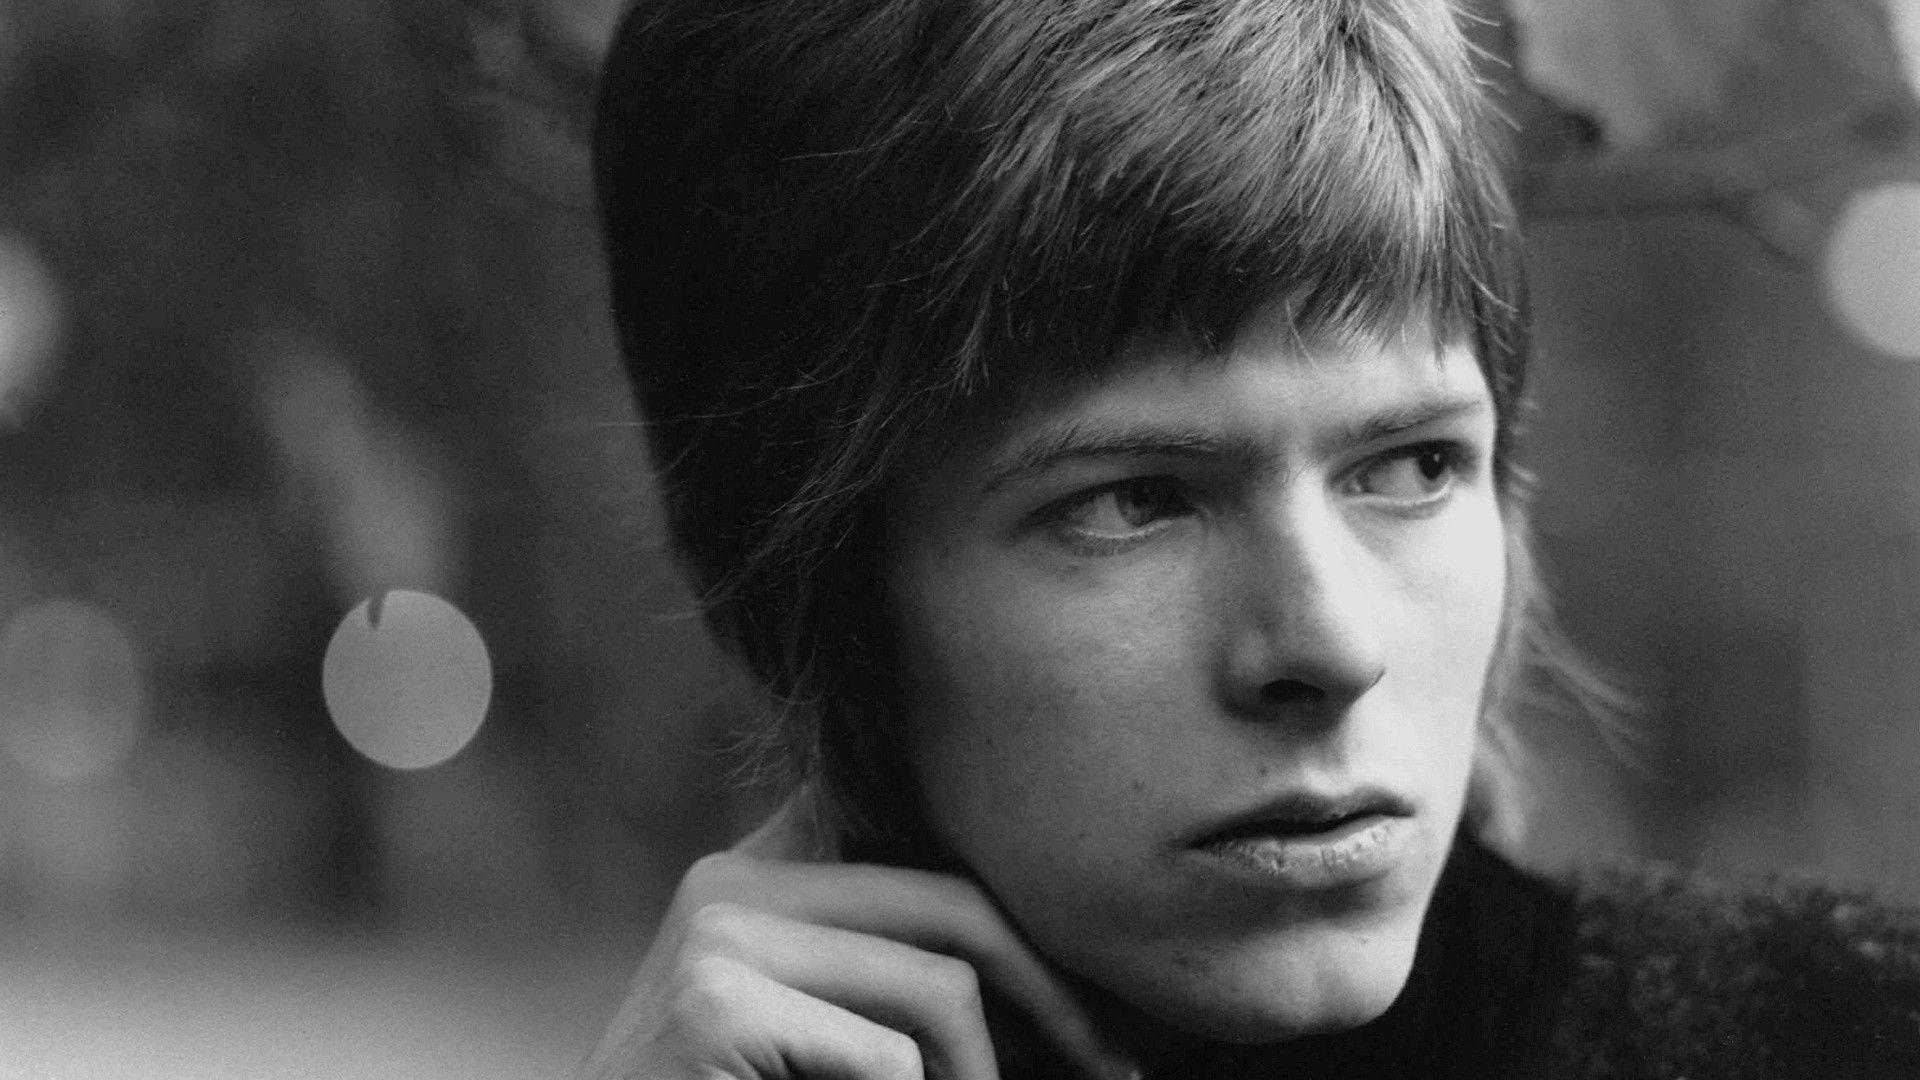 Young Davy - David Bowie Wallpaper (34011387) - Fanpop